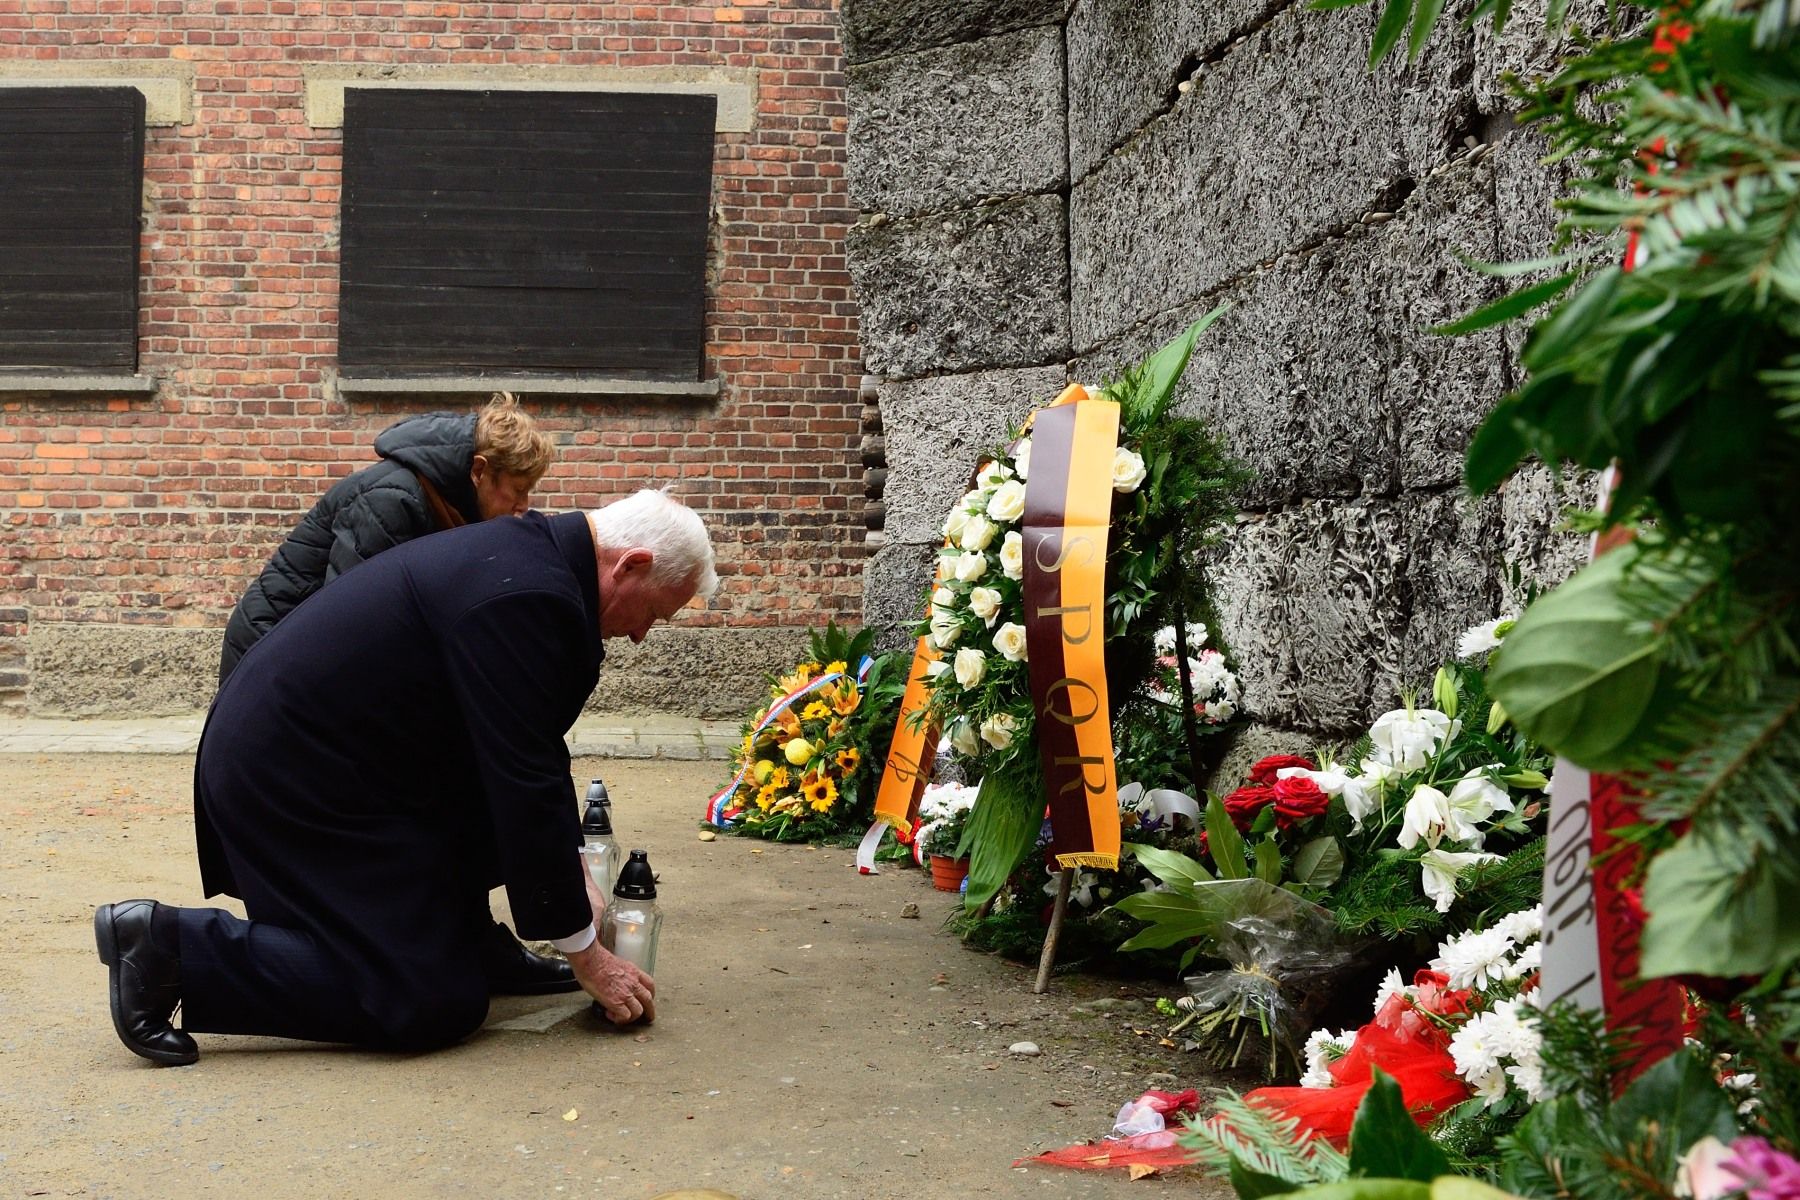 Their Excellencies laid flowers at the Wall of Death.